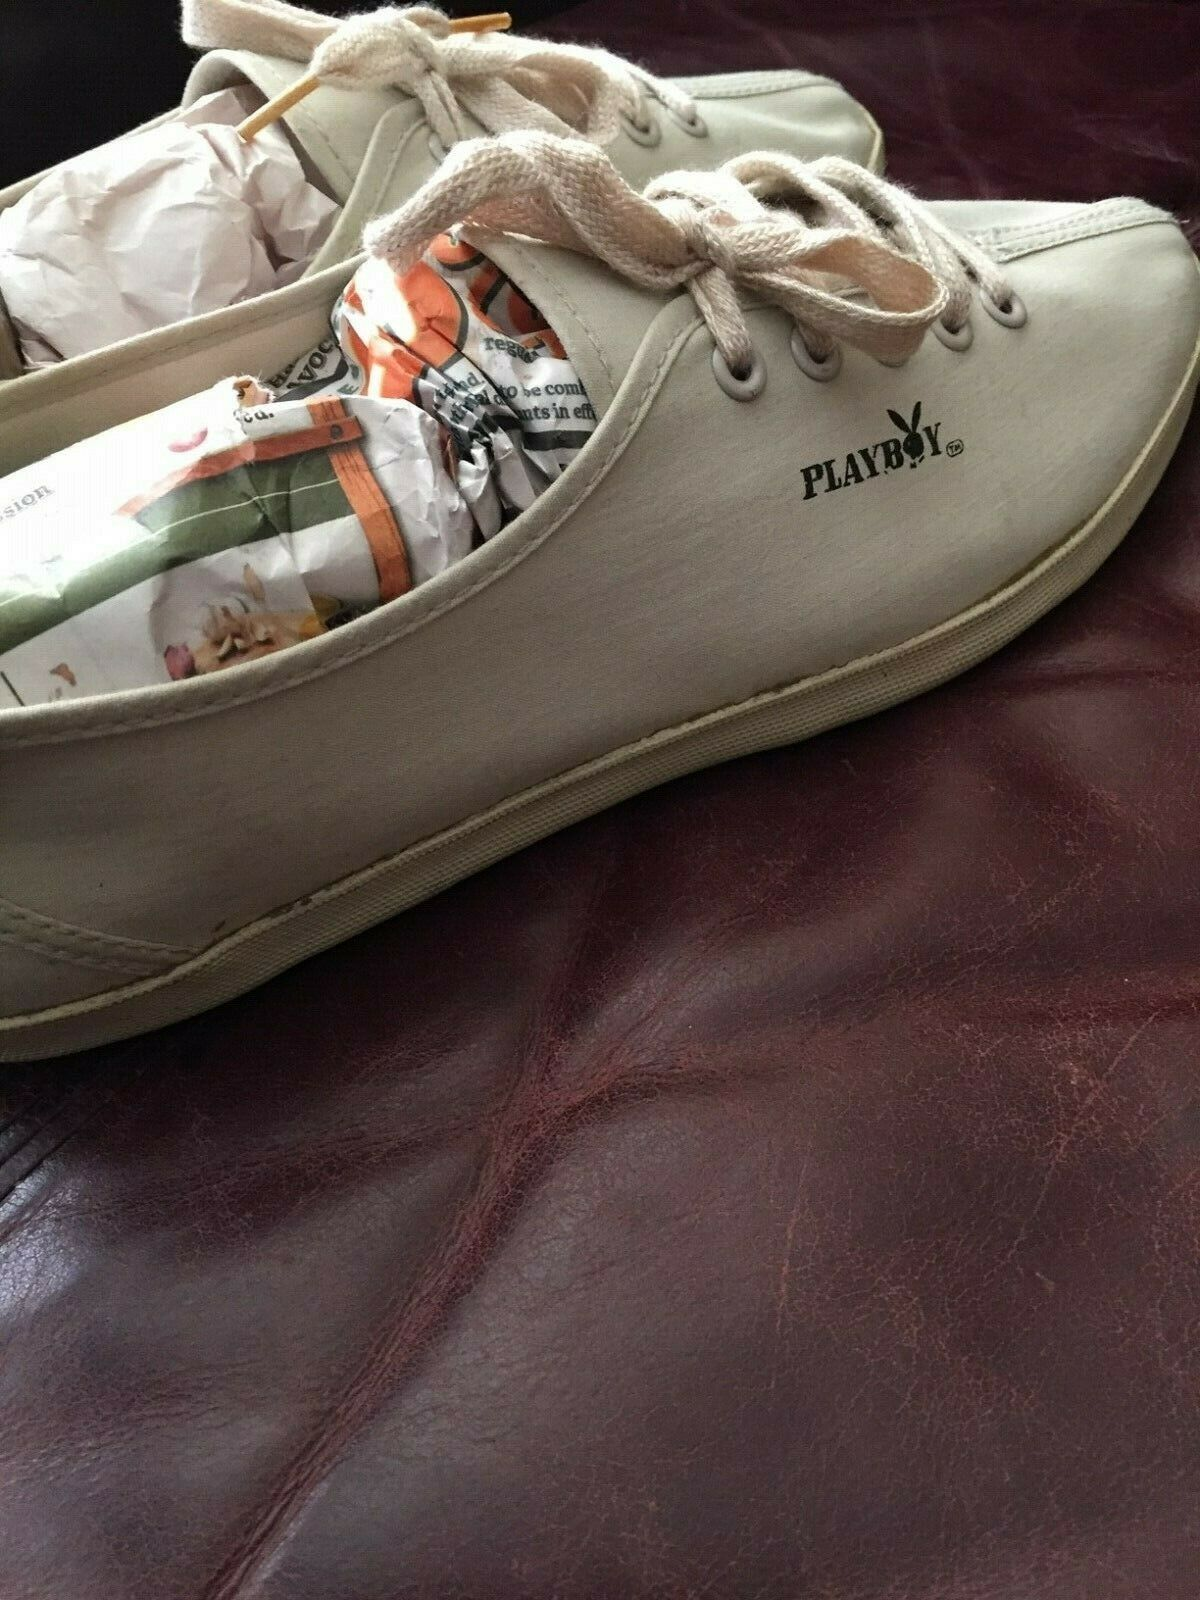 Playboy White Sneakers -Size 10 and Black Handbag Lot